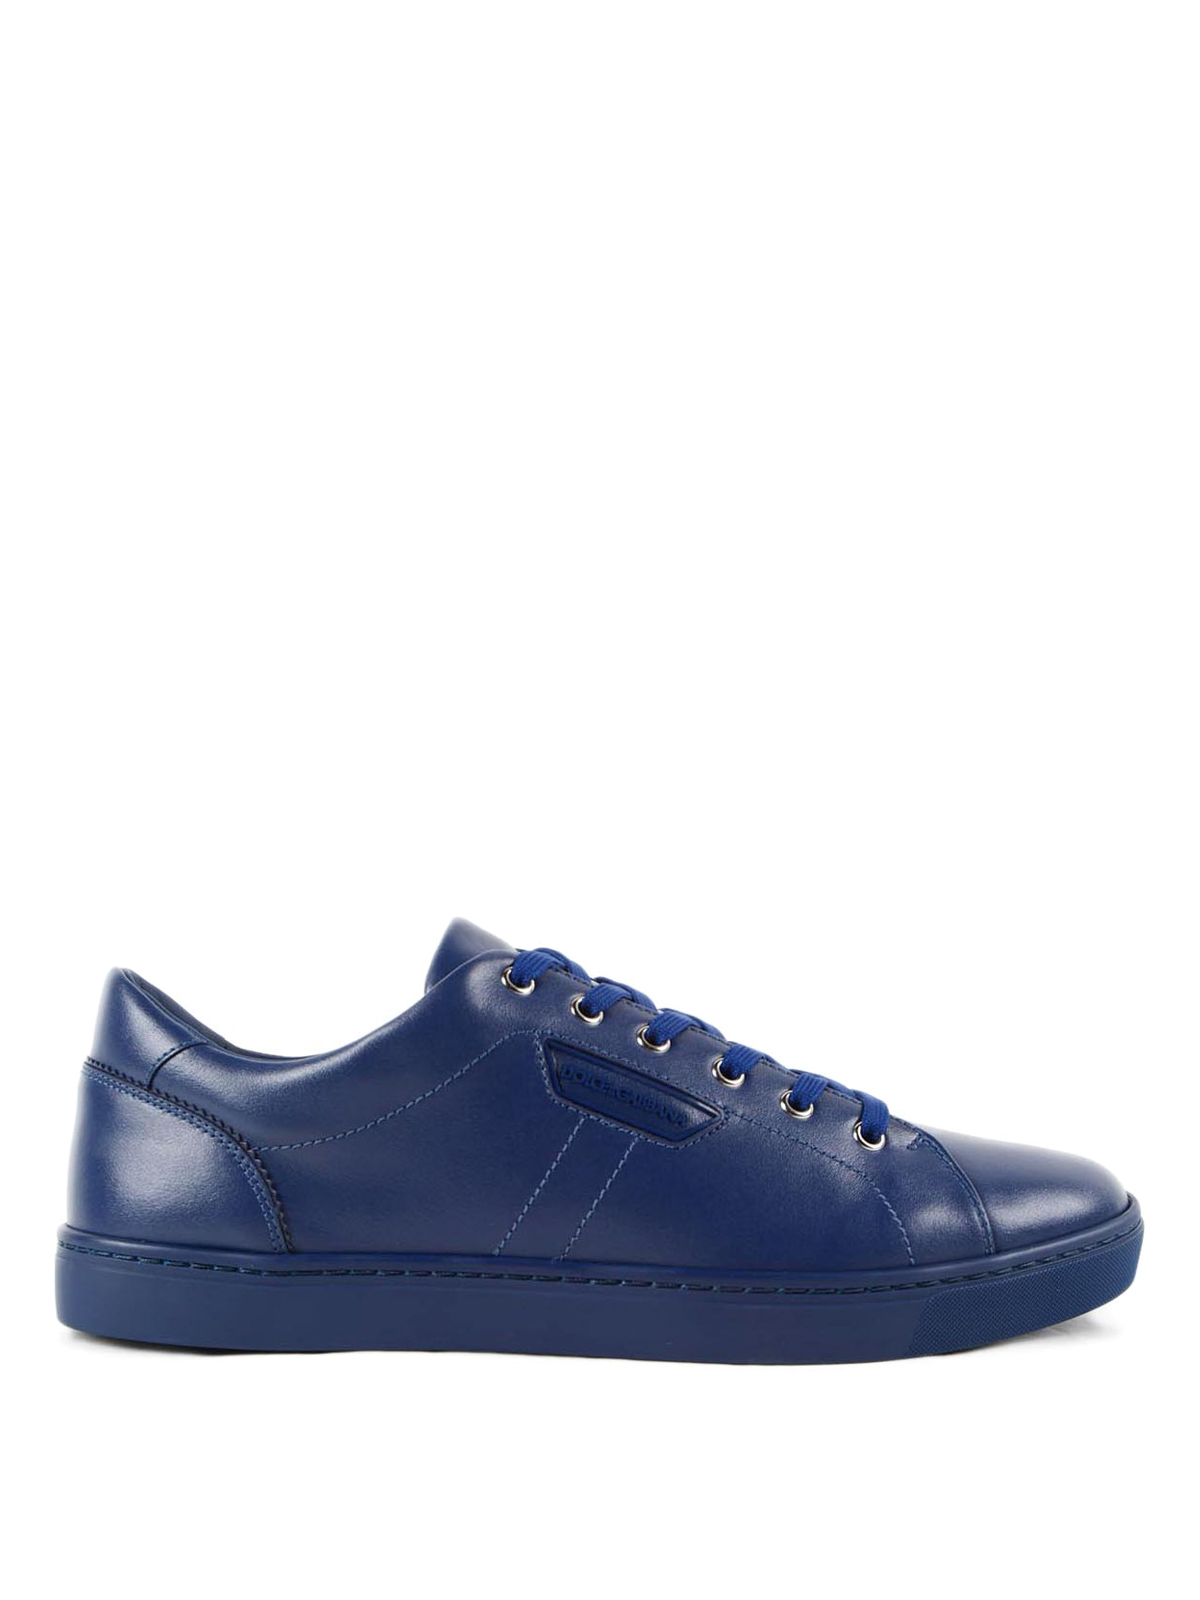 logo leather sneakers by dolce gabbana trainers ikrix. Black Bedroom Furniture Sets. Home Design Ideas